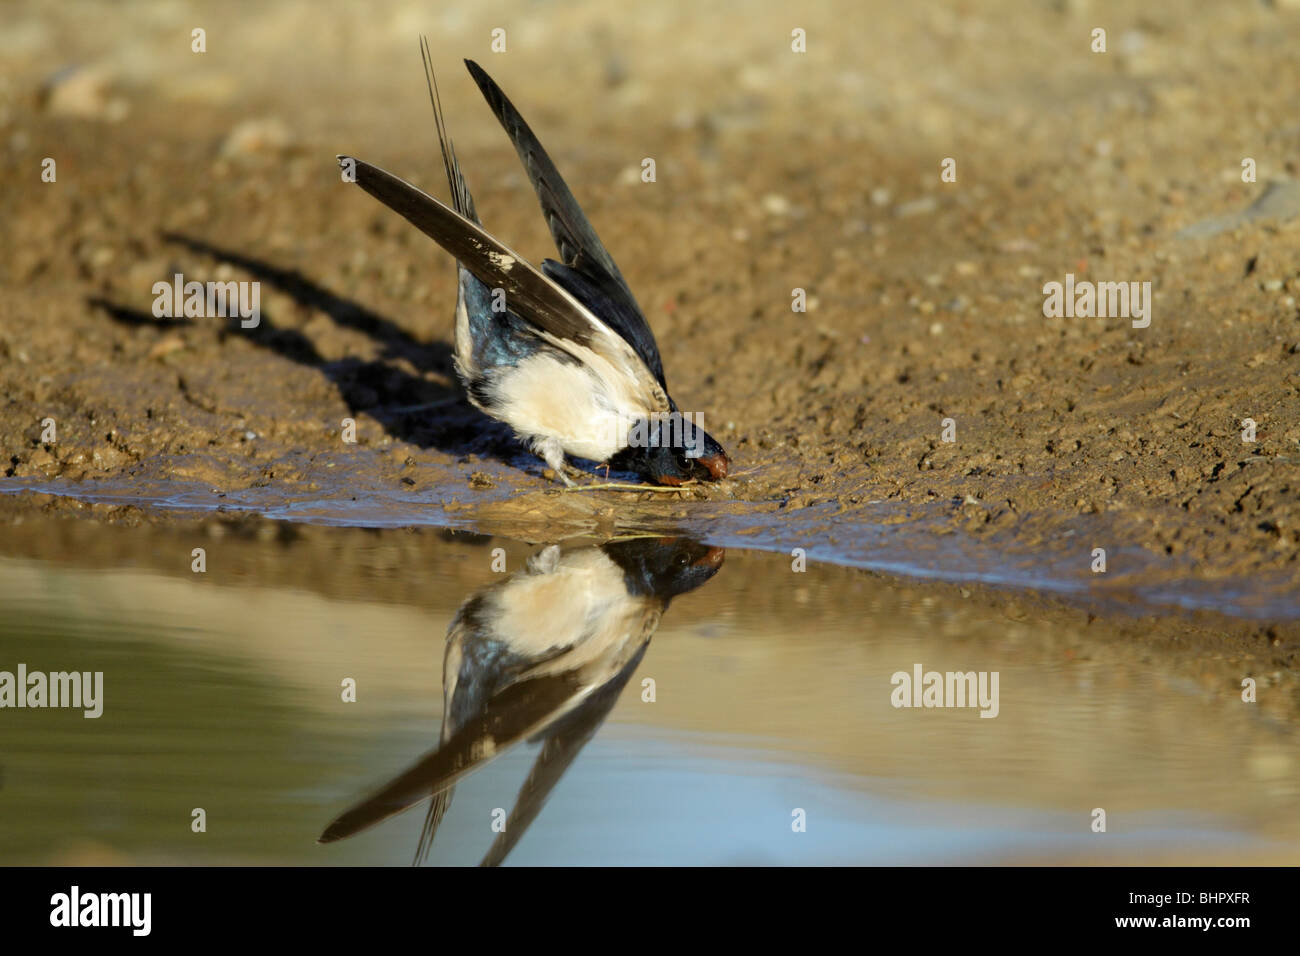 Barn Swallow (Hirundo rustica), collecting nest material from pool, Portugal - Stock Image